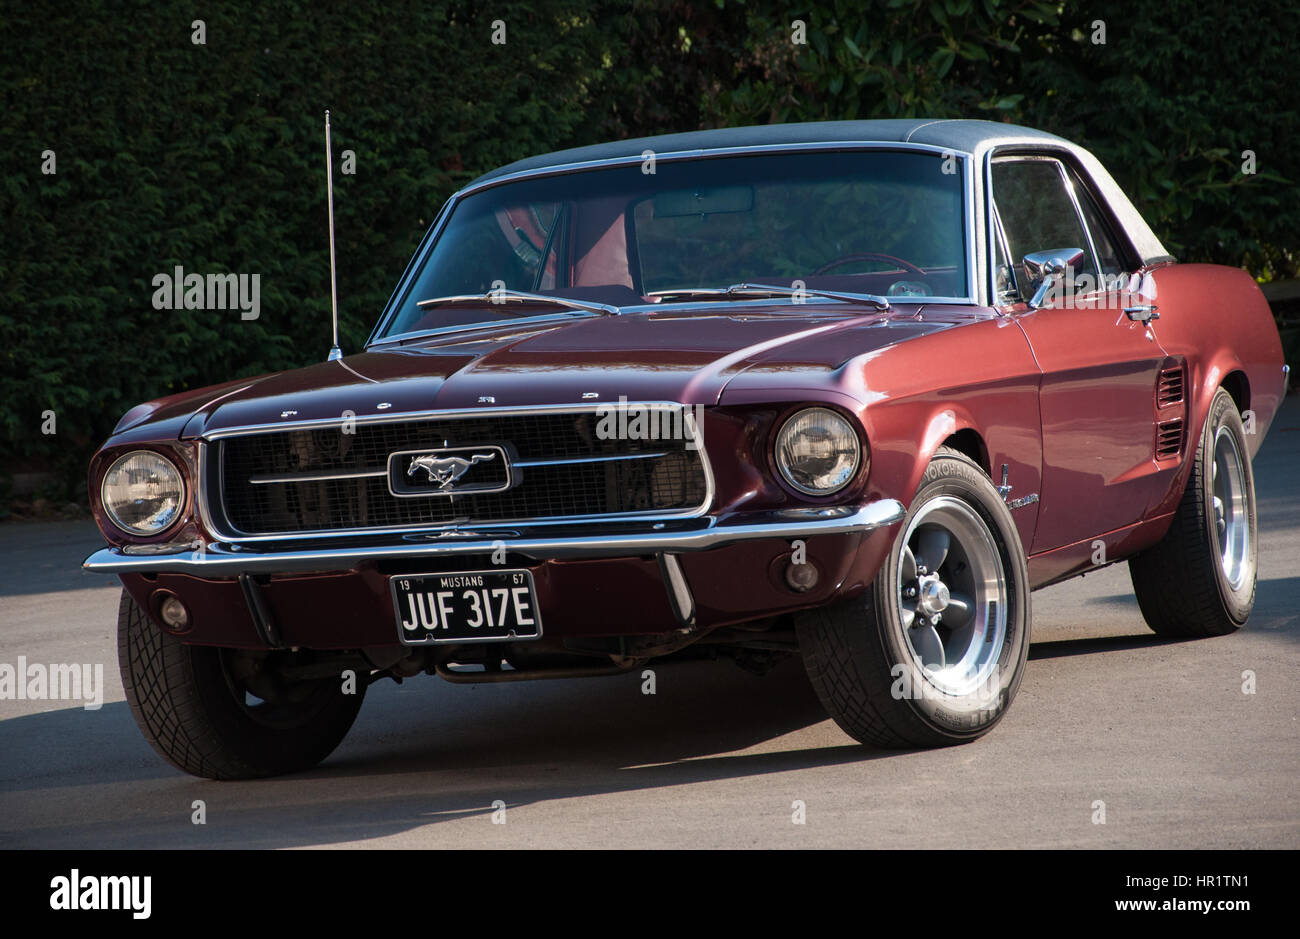 1967 classic ford mustang coupe in burgundy with torque thrust d wheels looking good in the sun